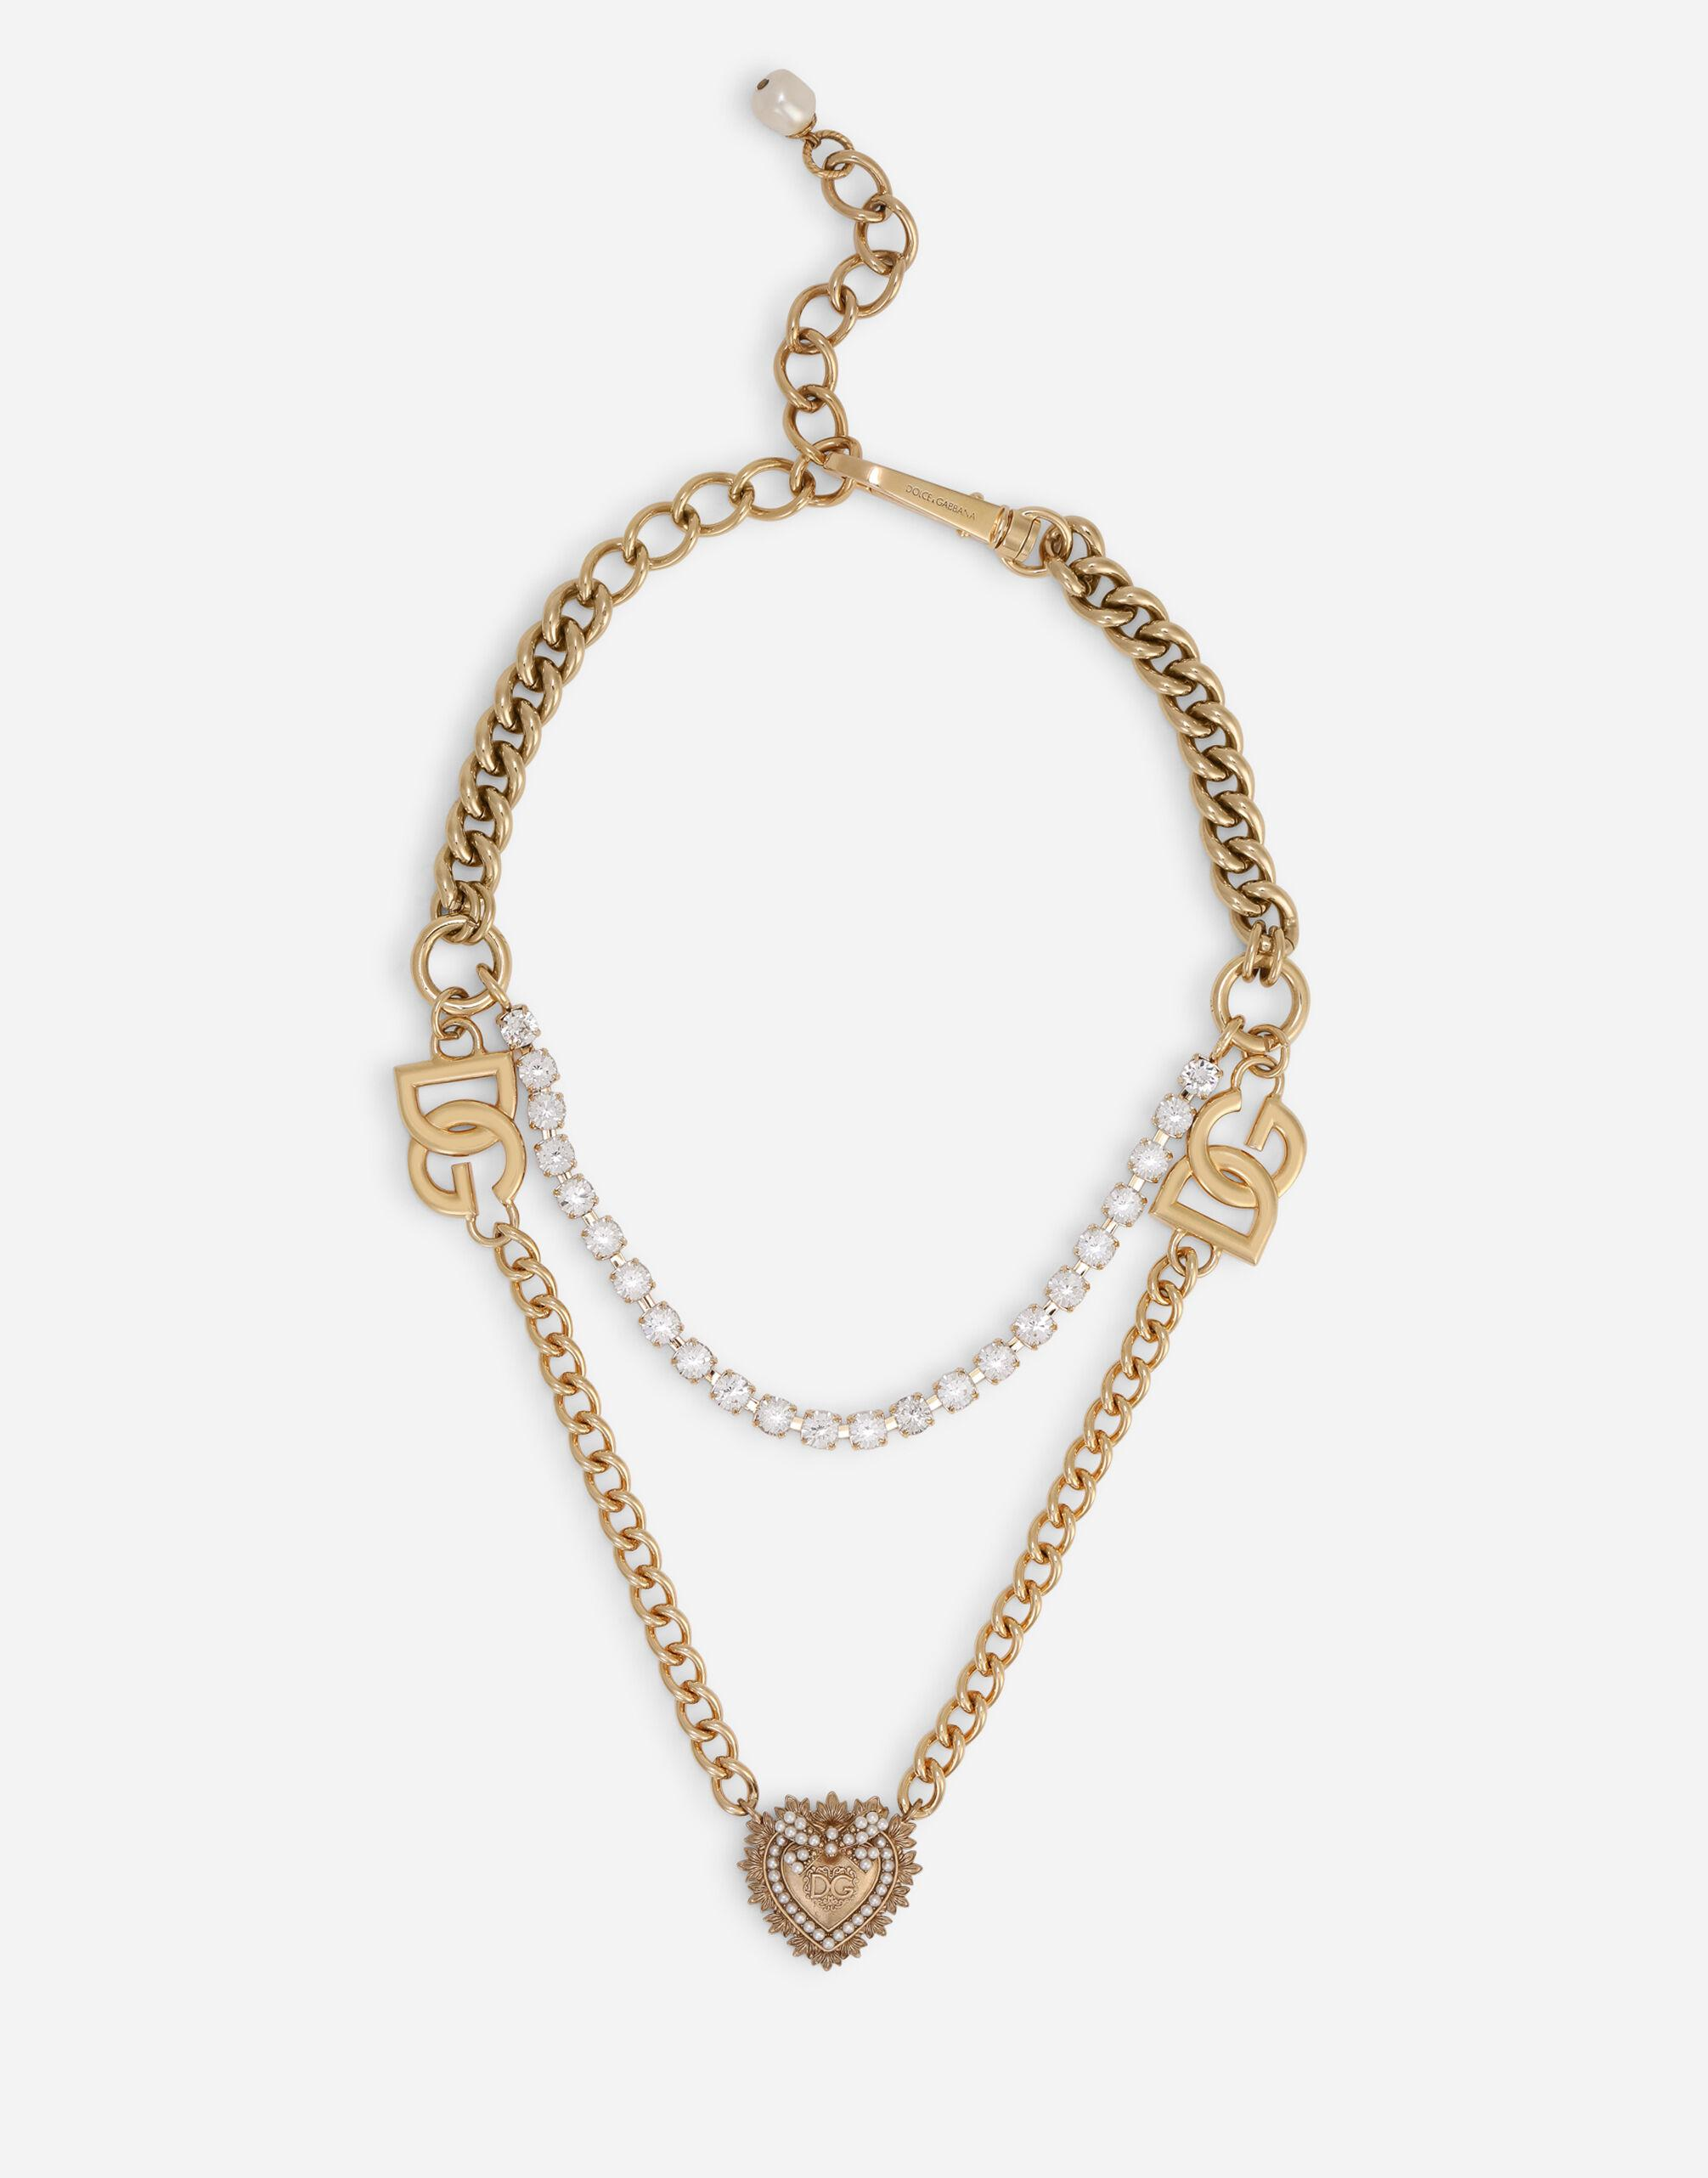 Double-chain necklace with sacred heart pendant